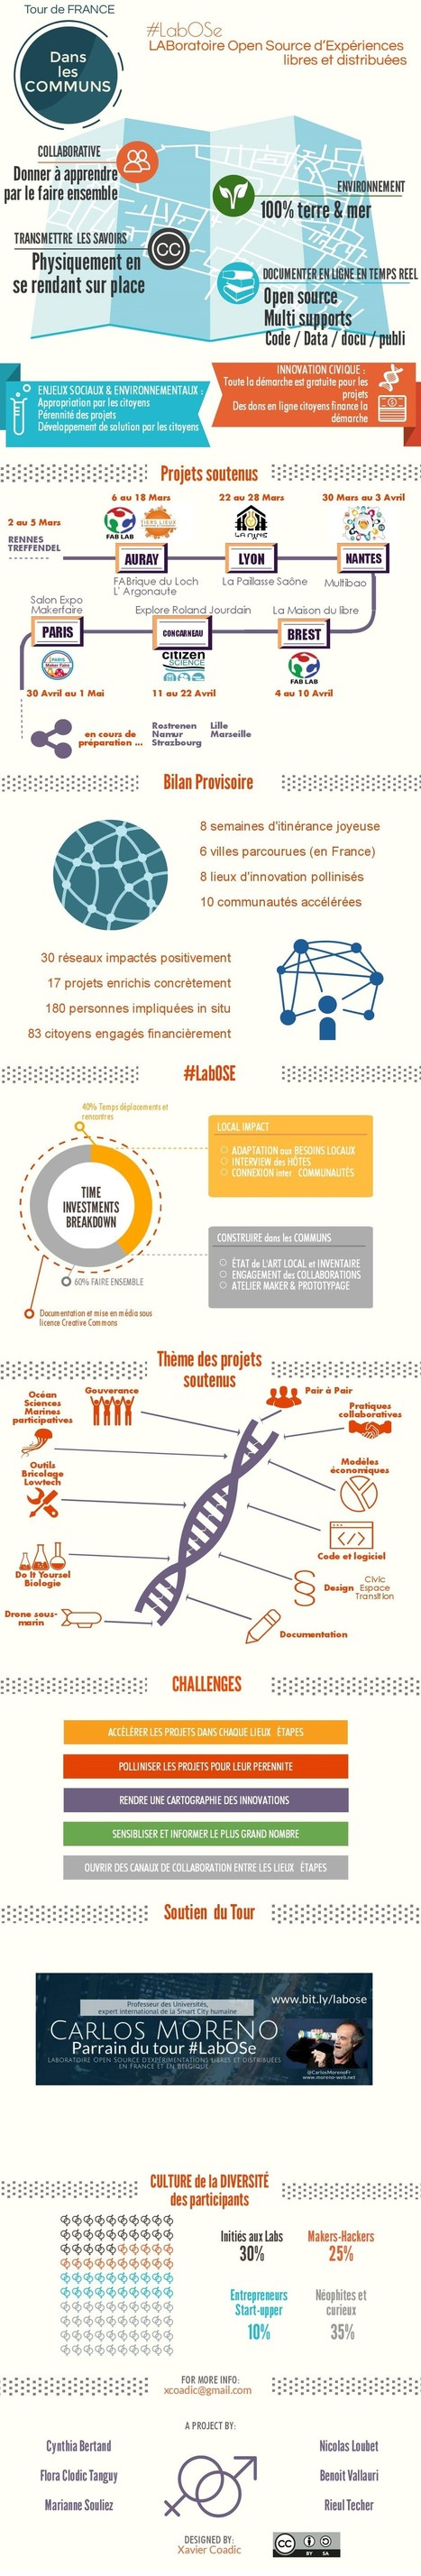 Le Tour de France dans les Communs en infographie | Innovations sociales | Scoop.it